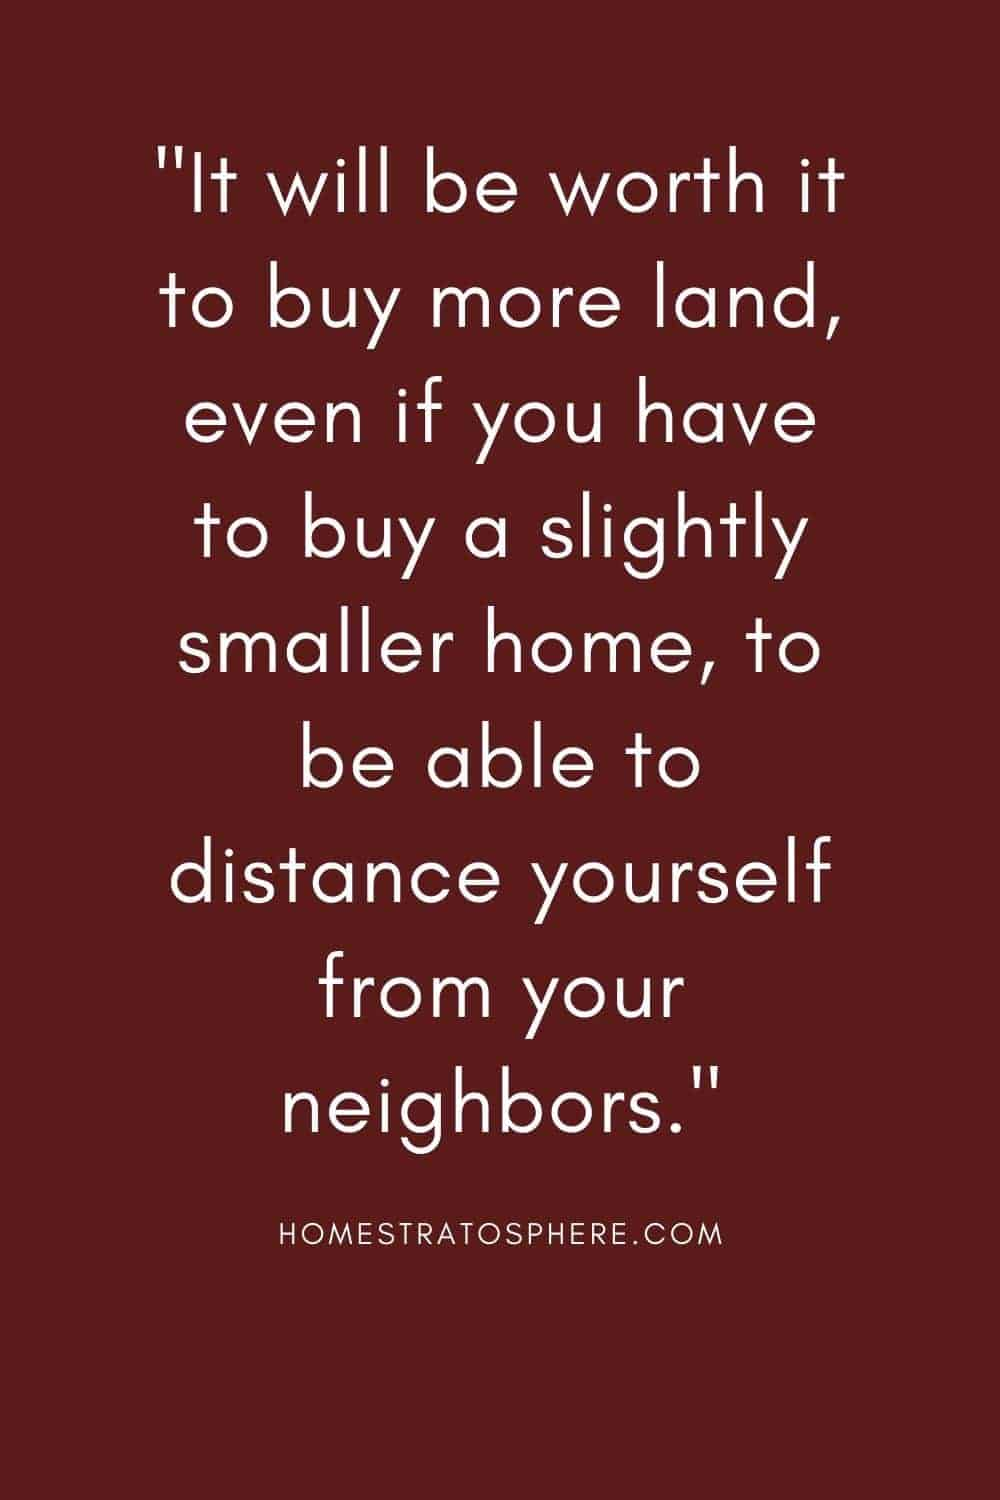 """It will be worth it to buy more land, even if you have to buy a slightly smaller home, to be able to distance yourself from your neighbors."""